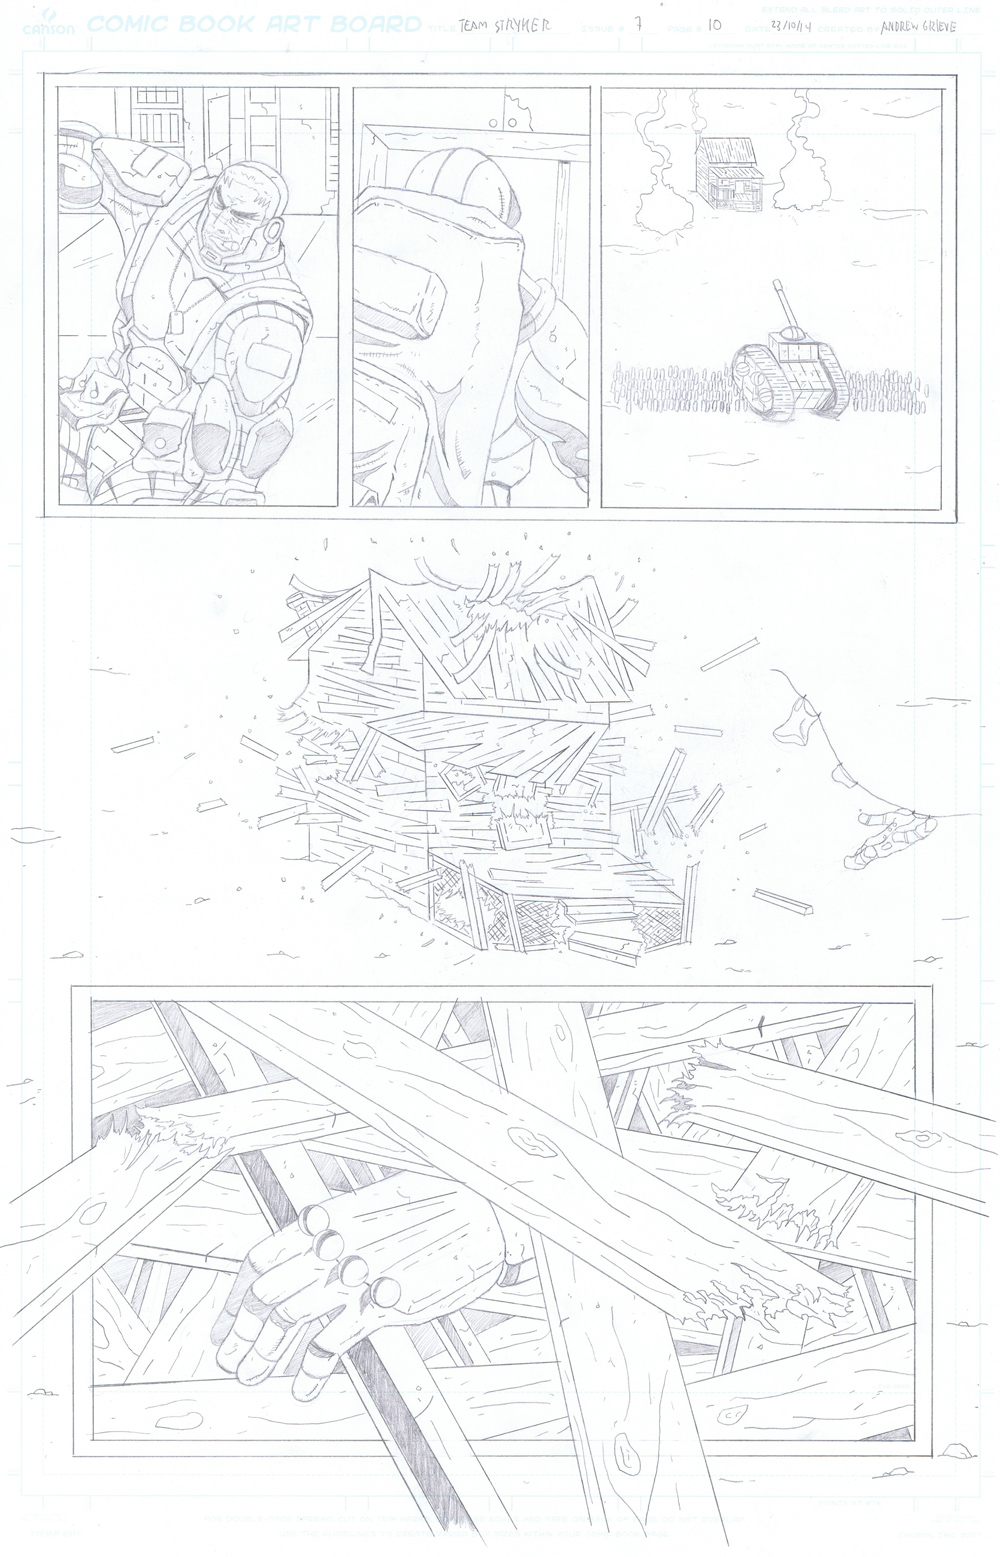 MISSION 007: PAGE 10 PENCIL